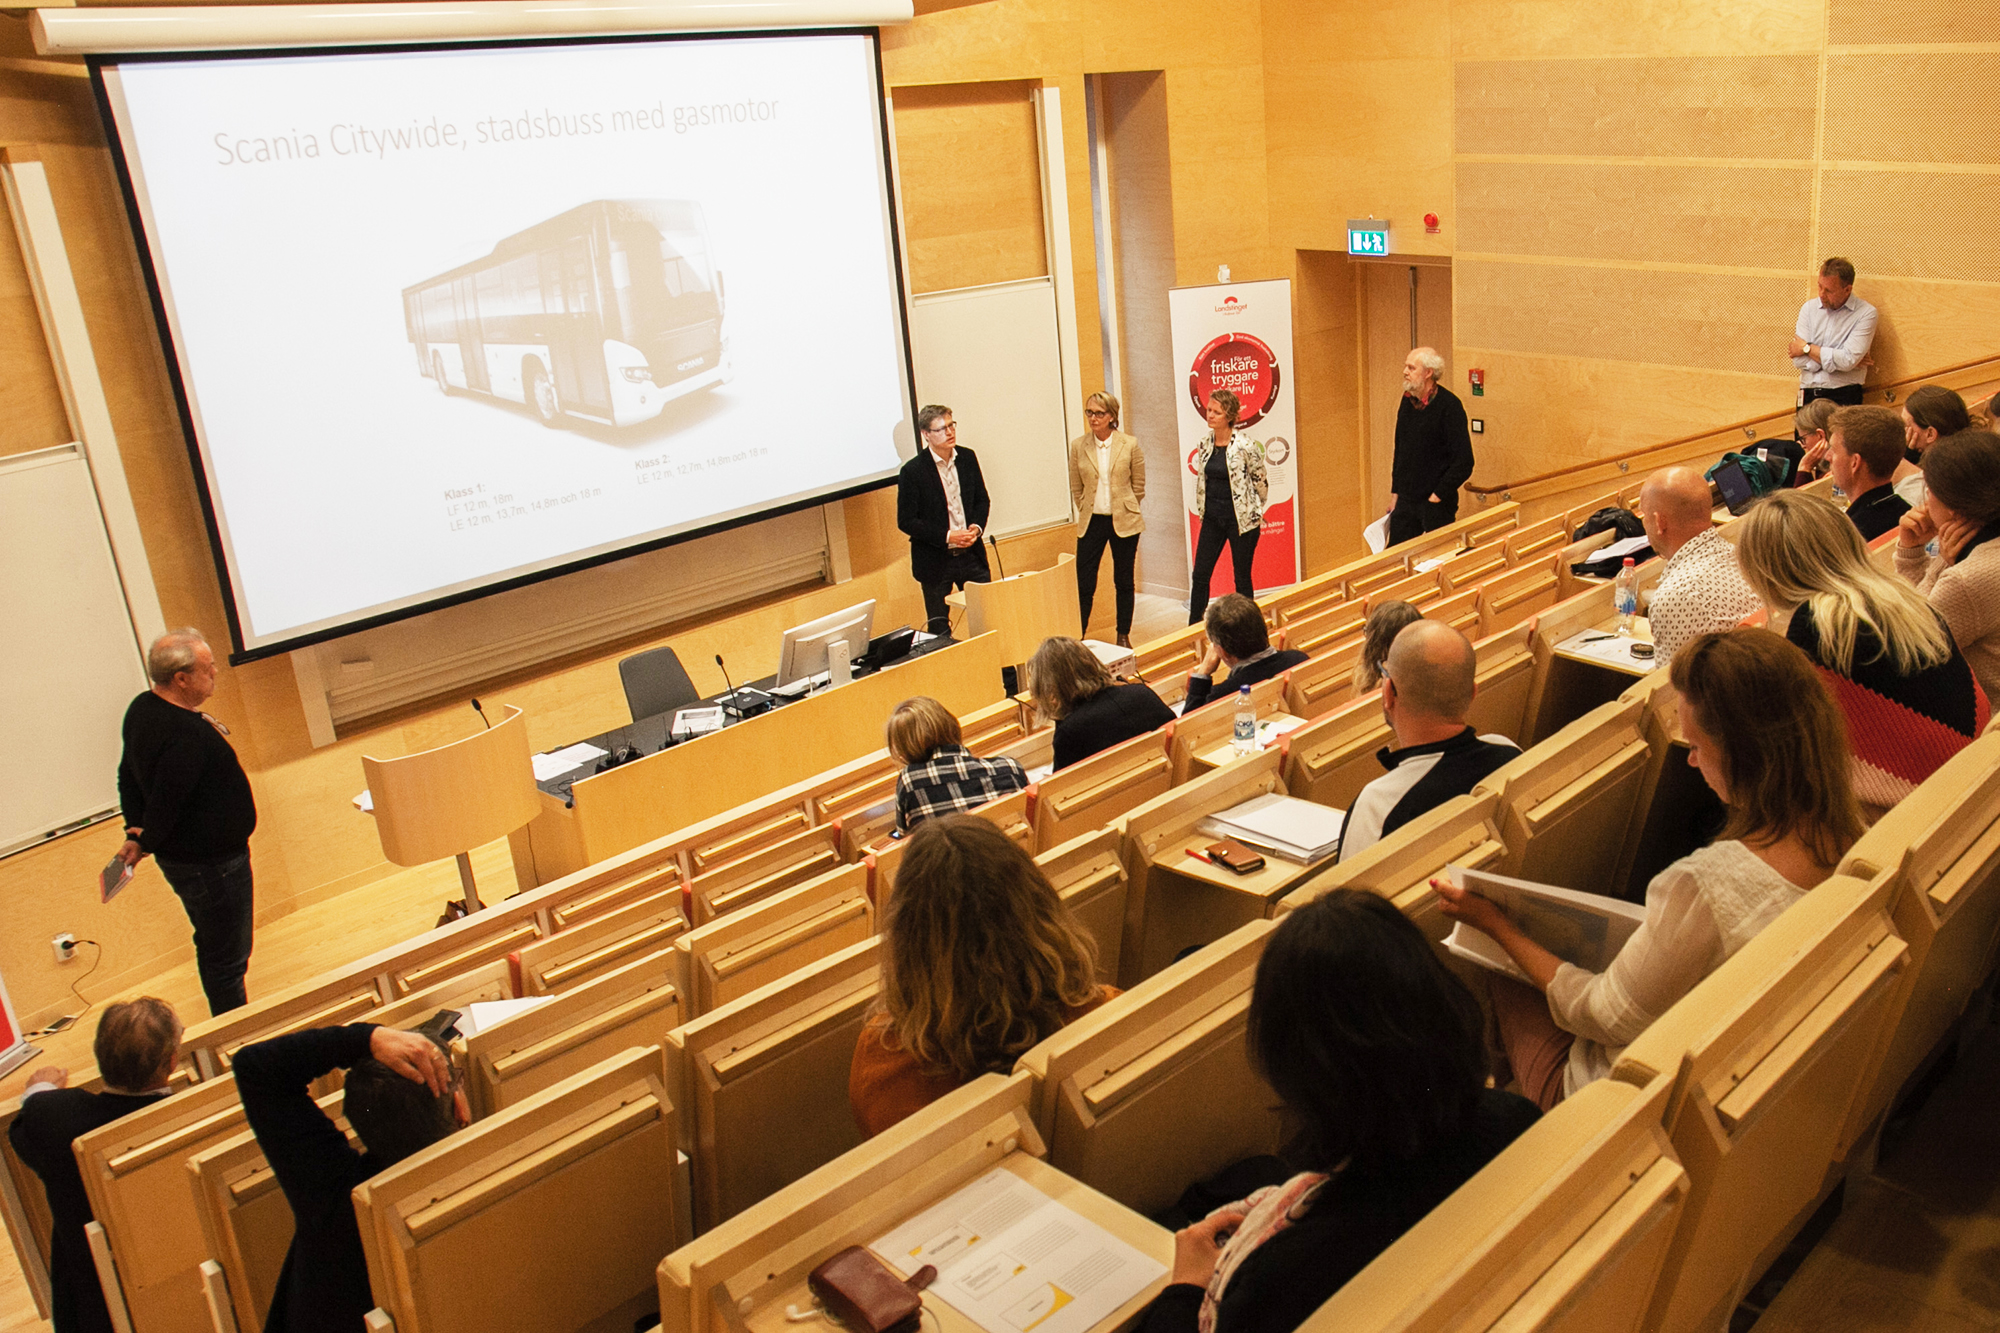 Moving to biogas saves Kalmar money - Linköping University